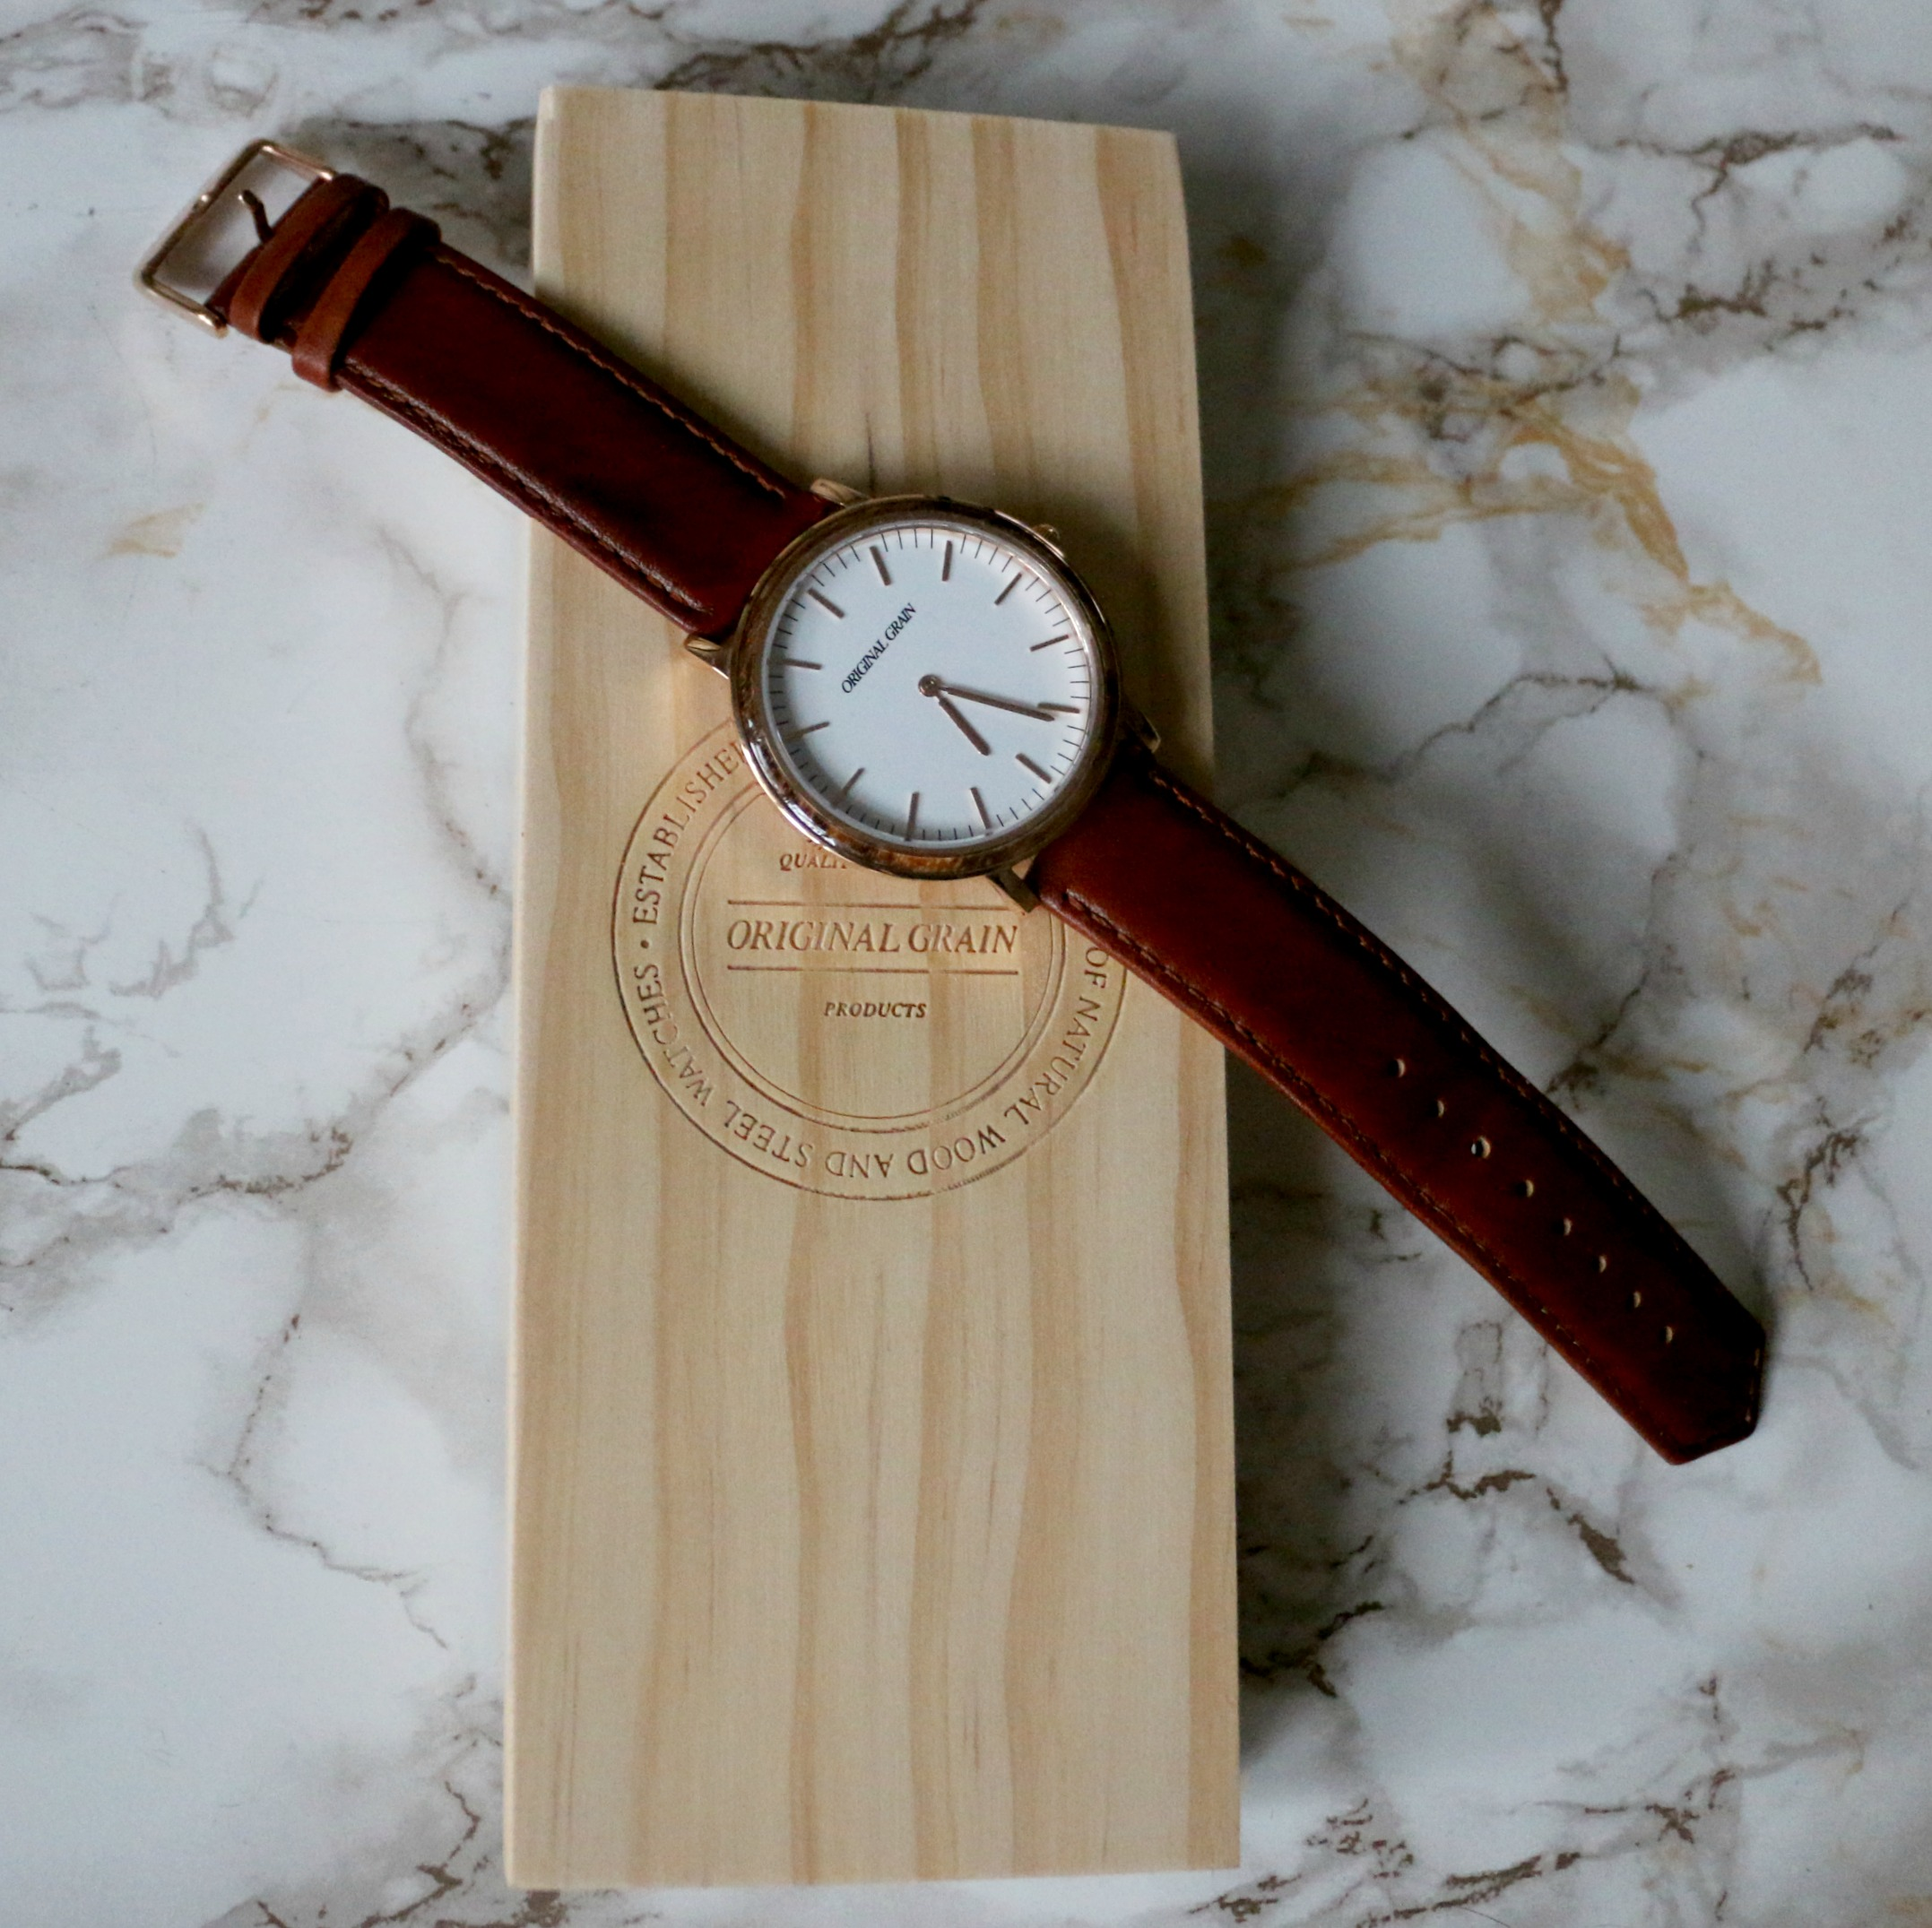 original-grain-minimalist-collection-rose-gold-sorewood-watch-for-men-fashion-beauty-and-the-beat-blog